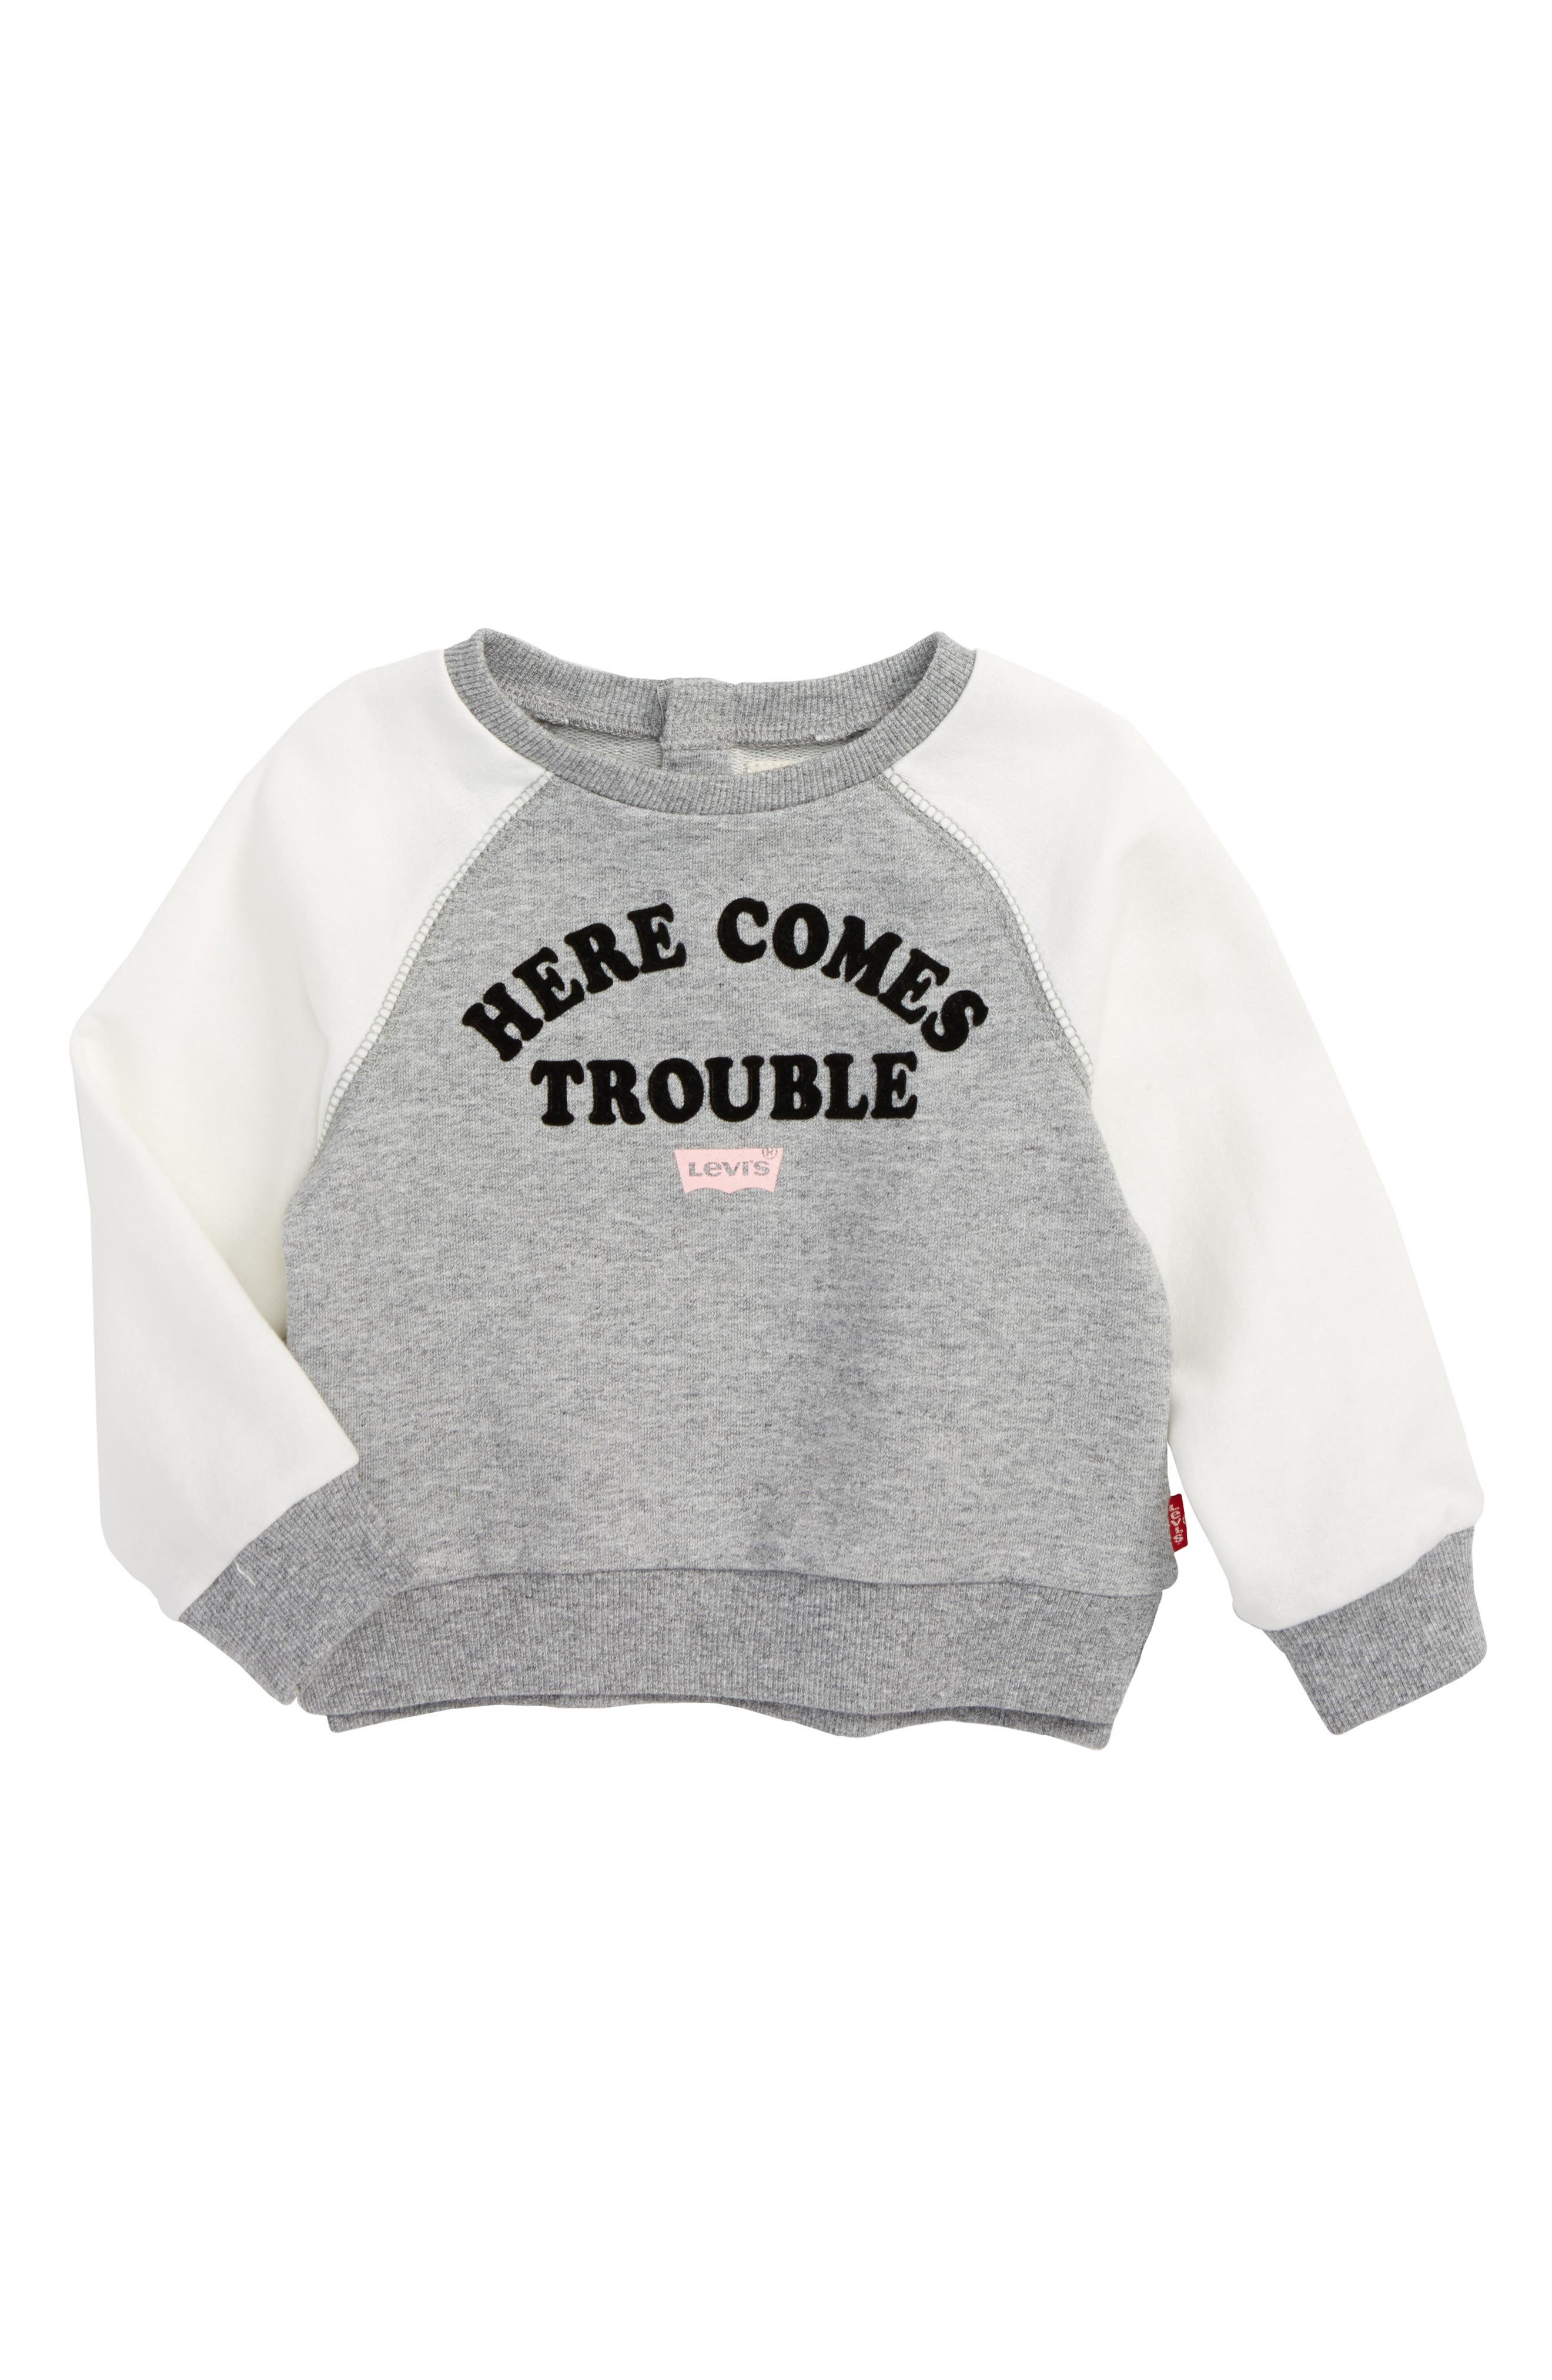 Here Comes Trouble Graphic Tee,                         Main,                         color,